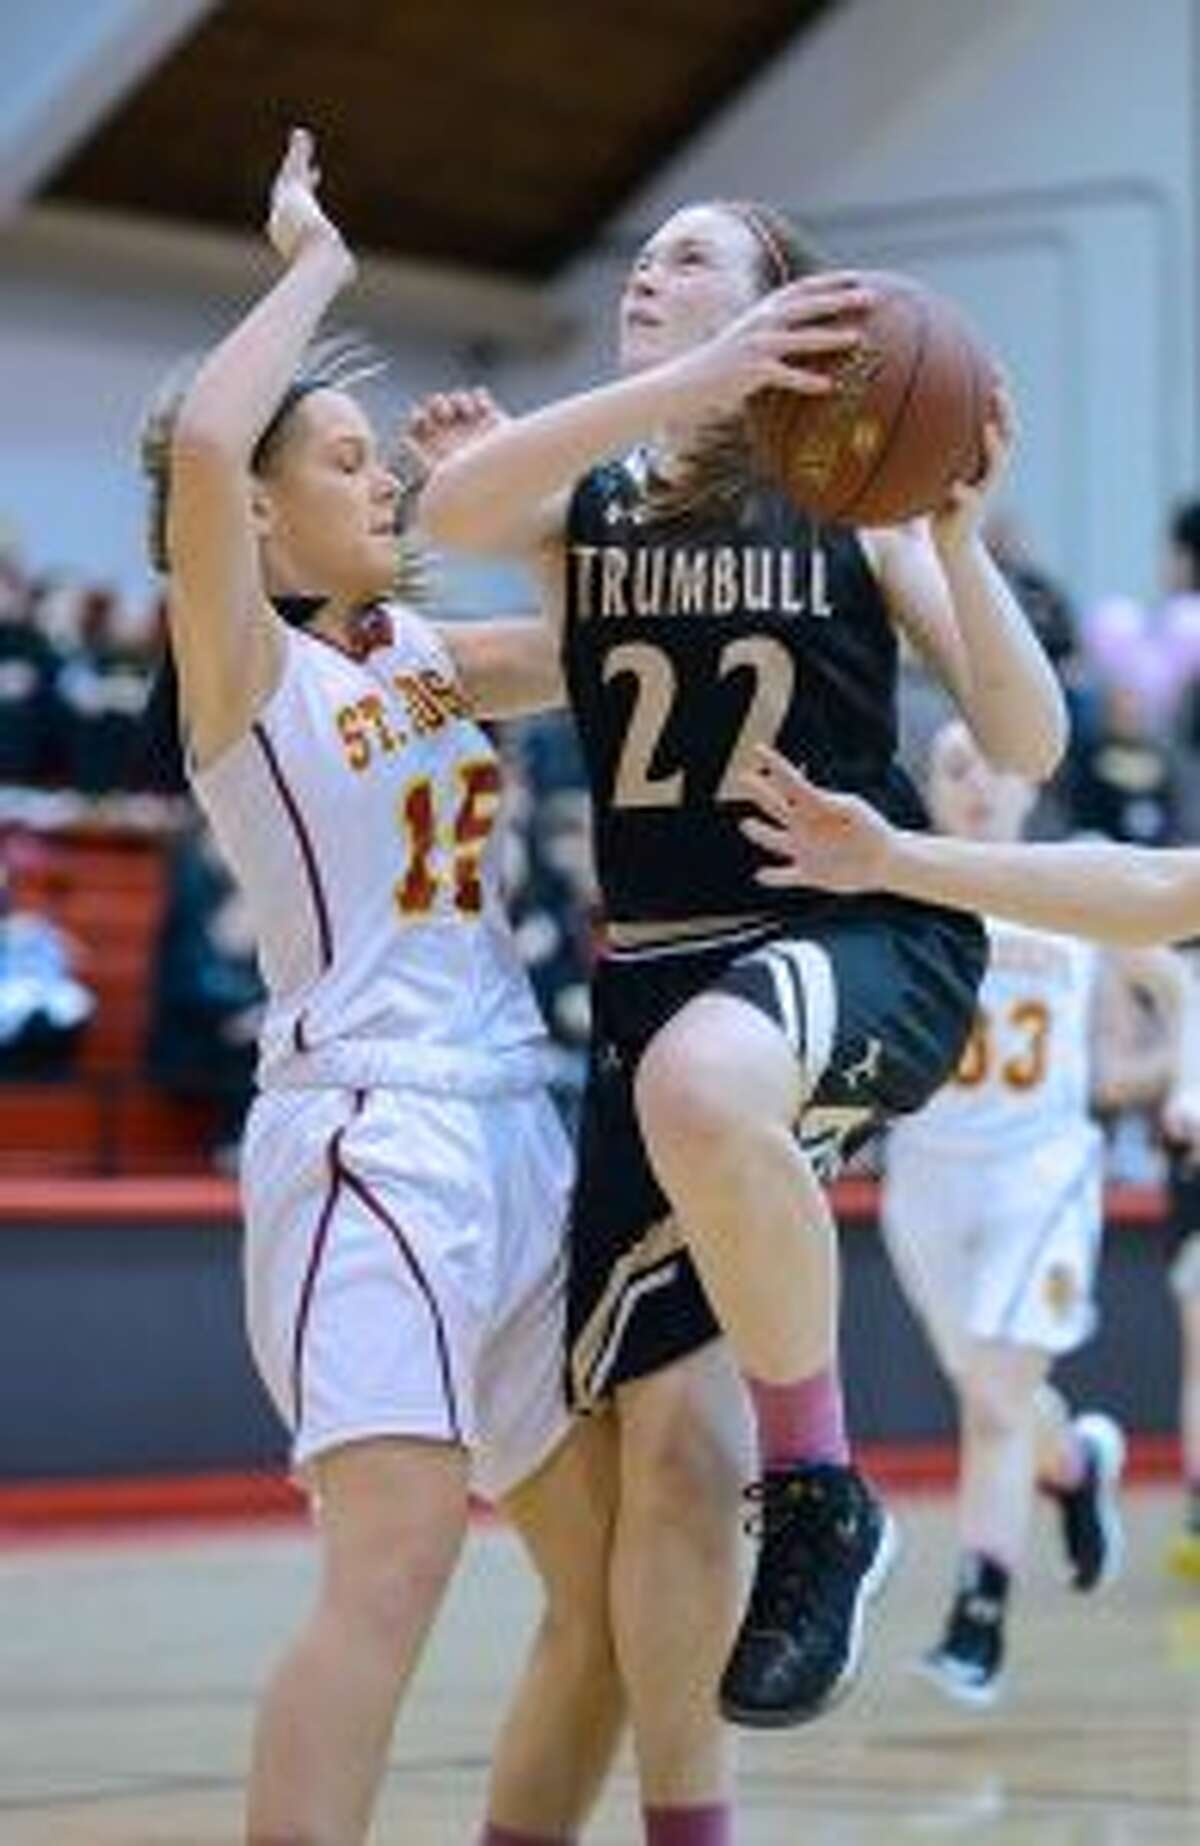 Trumbull High's Aisling Maguire scored seven points versus the Crusaders. - David G. Whitham photo